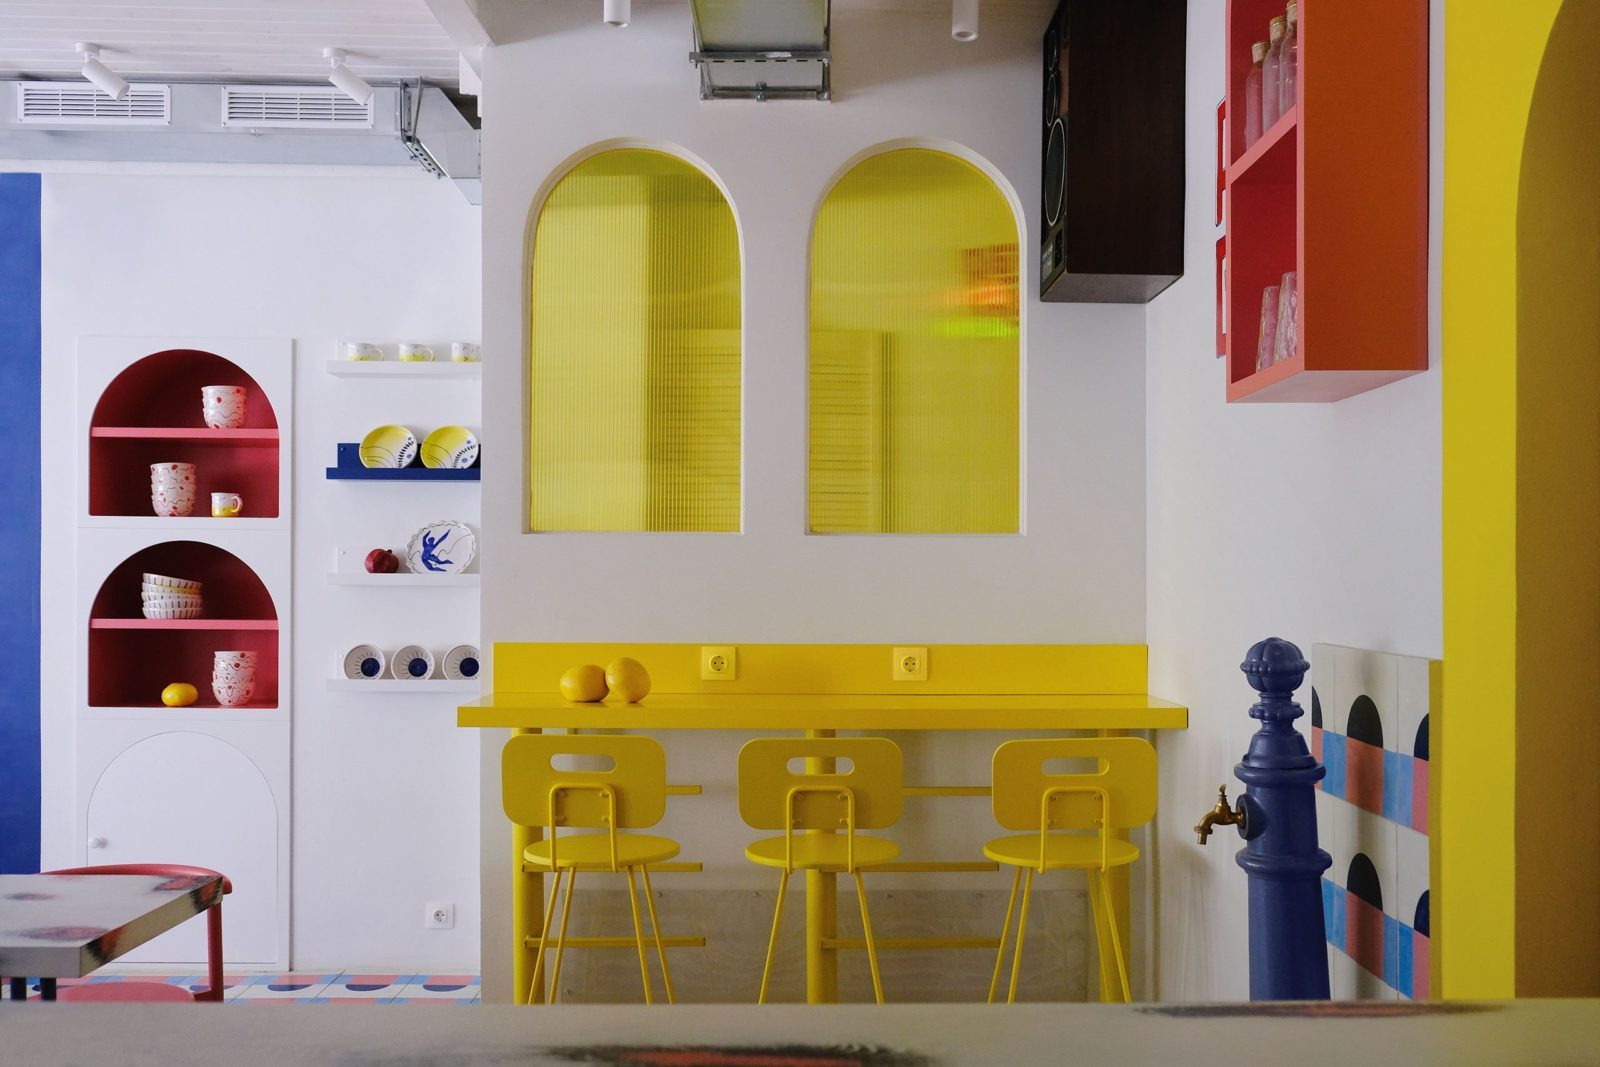 Colourful arches embrace a youthful sense of postmodernism